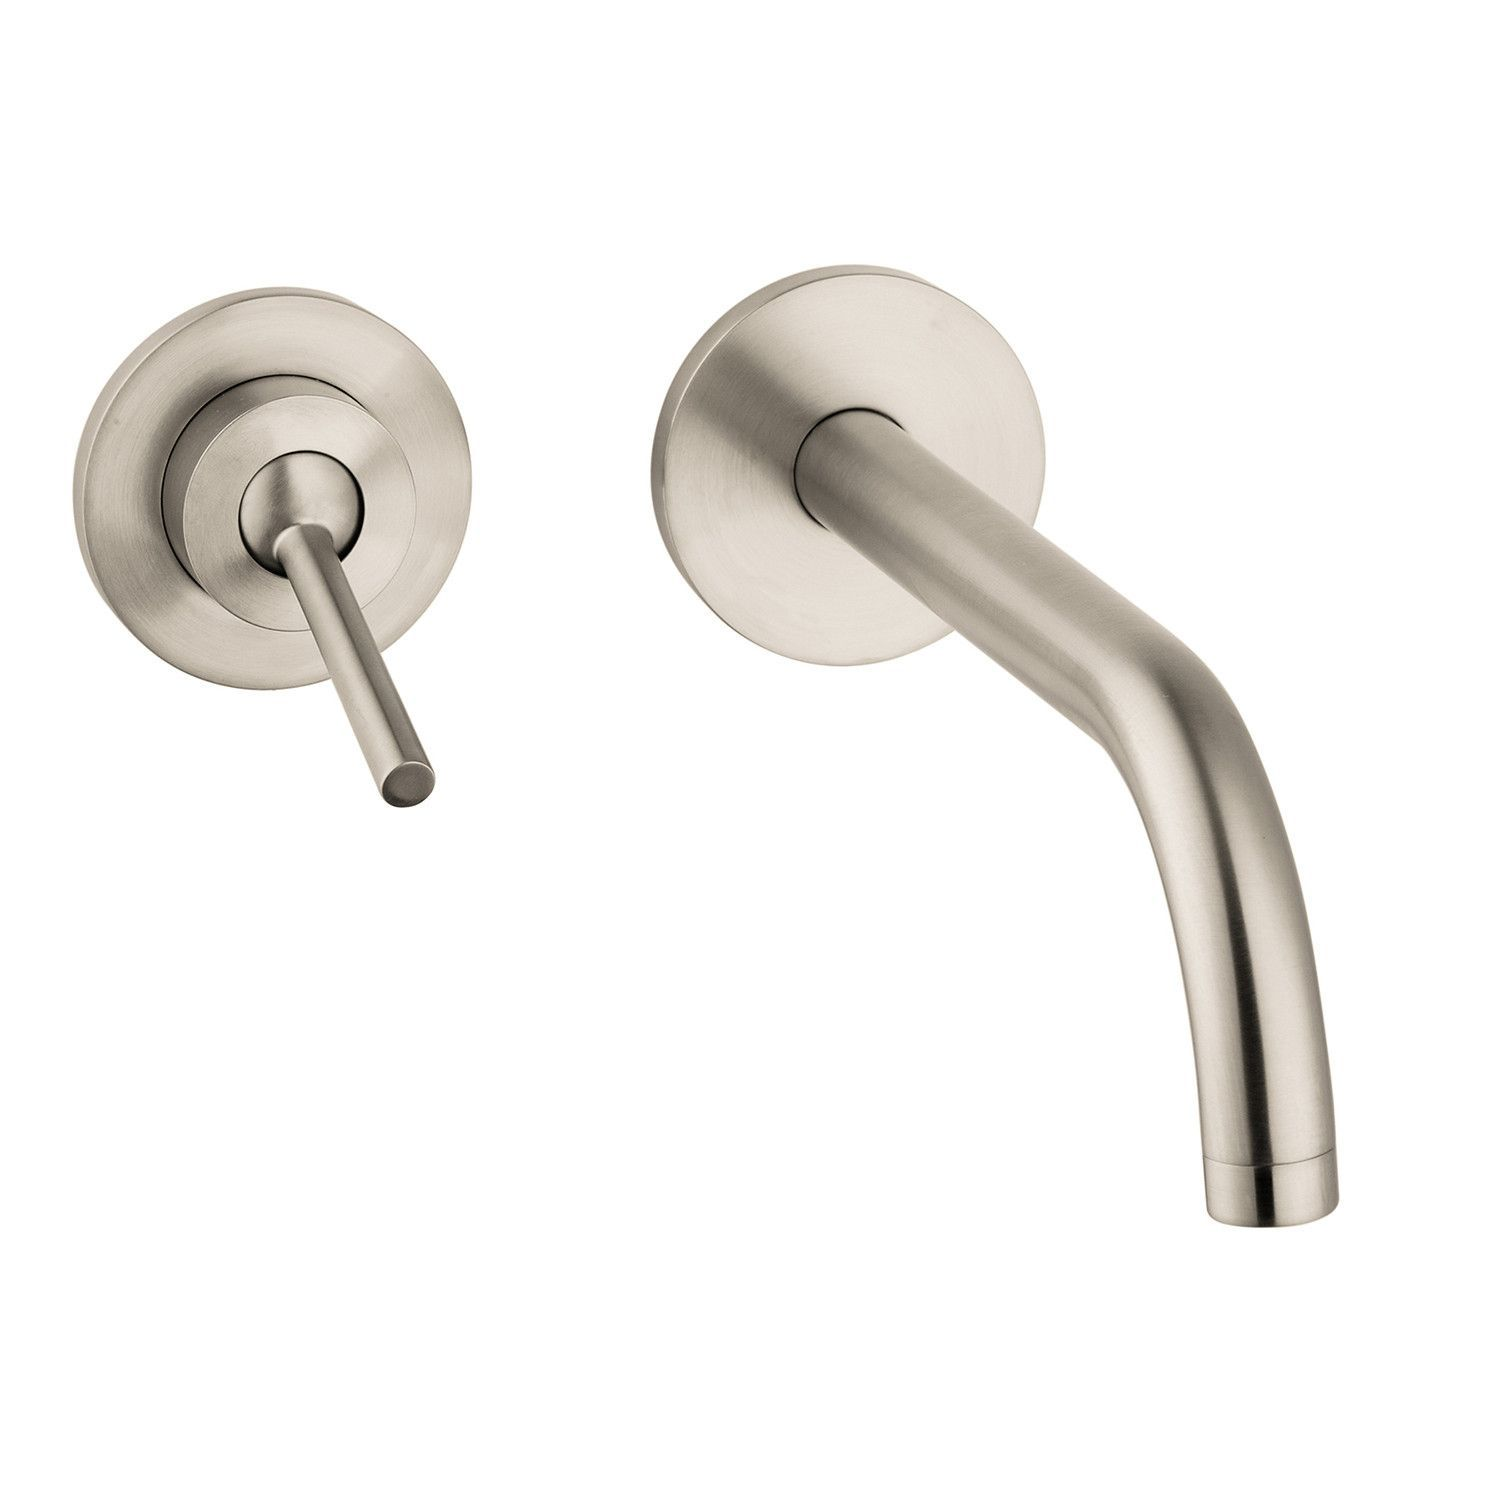 metris c einhebel with faucet mount hansgrohe pullout shower faucets e select s single spout latest affordable mixer focus wall kuechenmischer kitchen lever mit ausziehauslauf